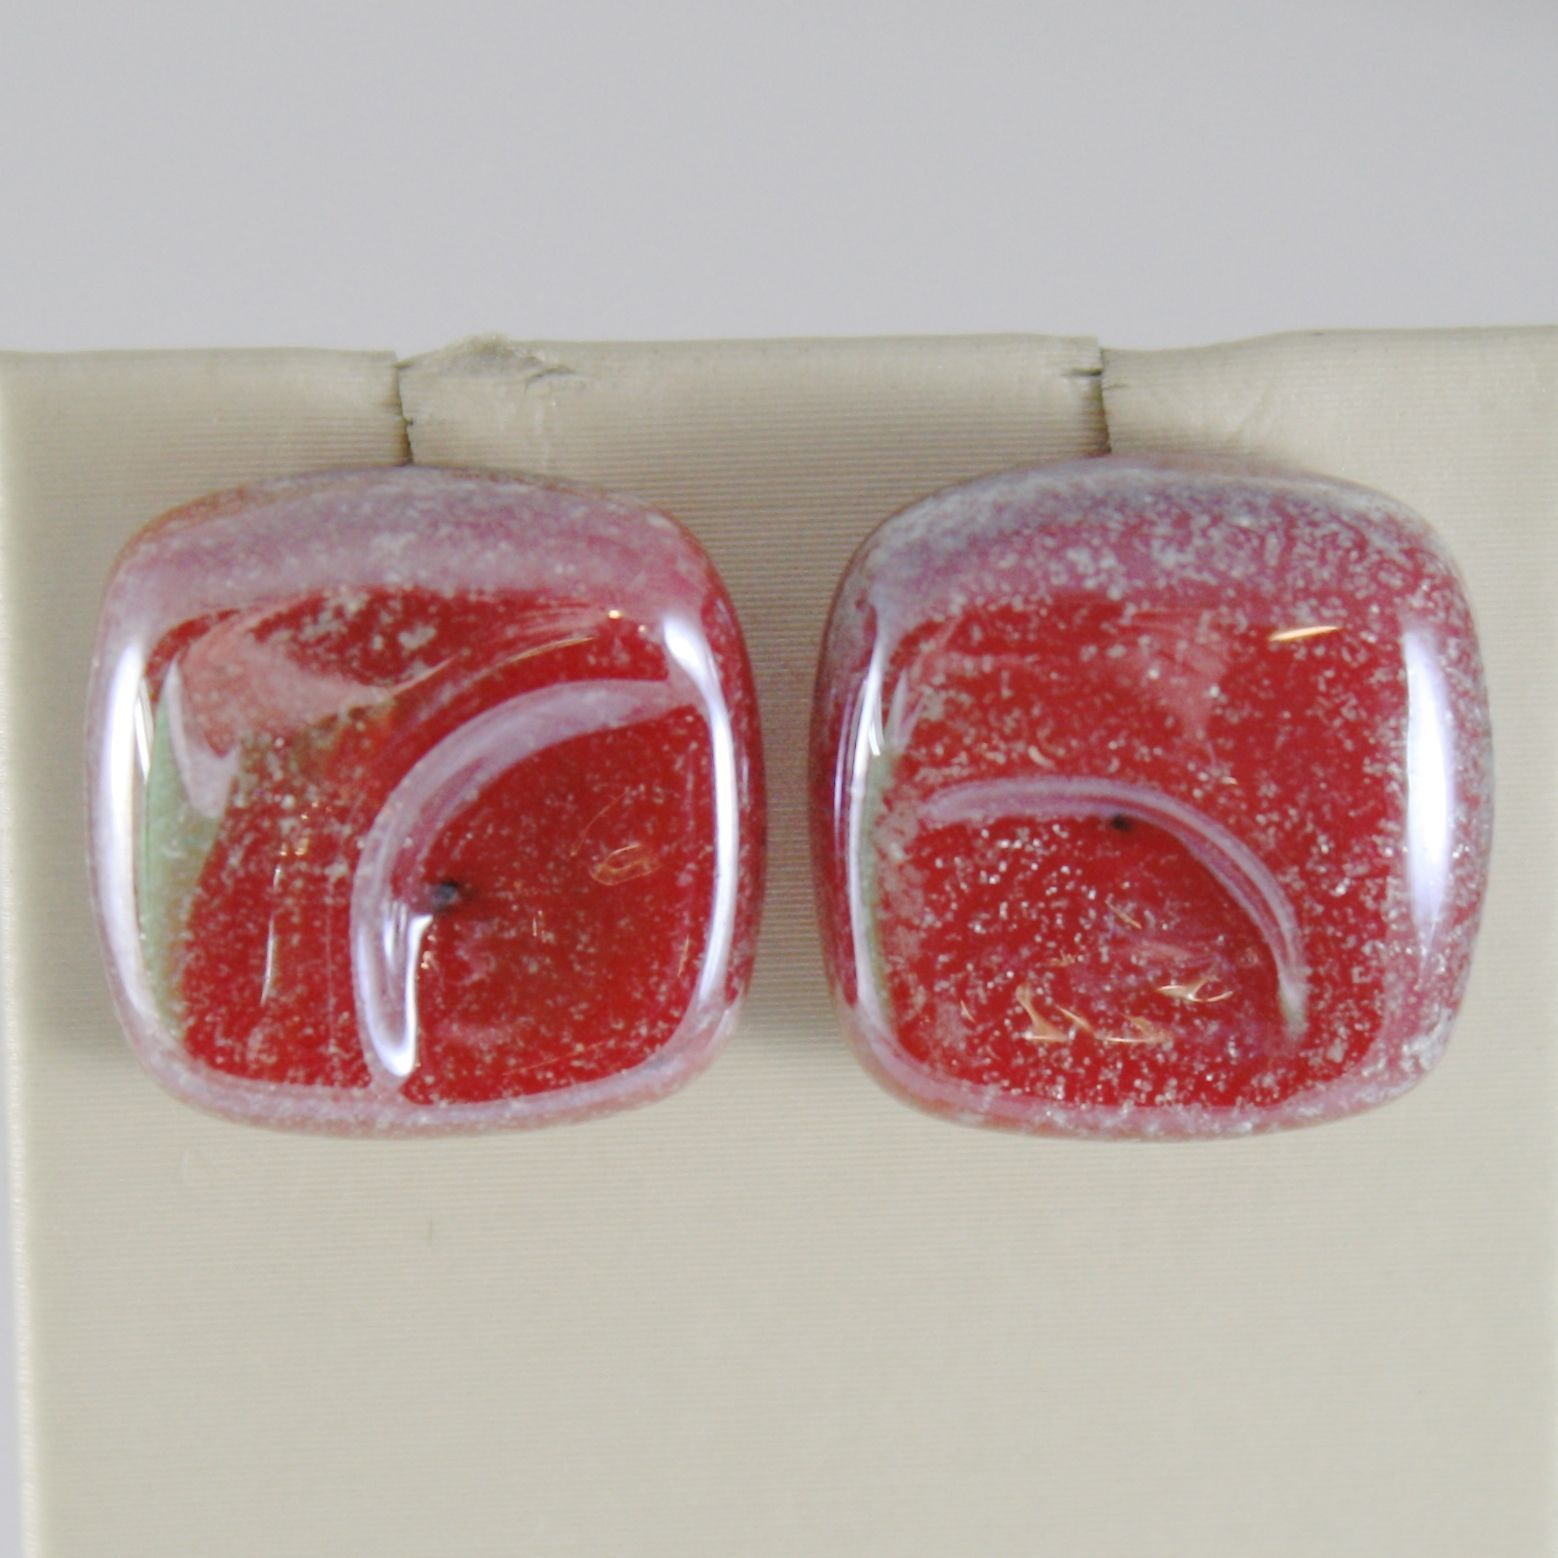 EARRINGS ANTICA MURRINA VENEZIA WITH MURANO GLASS RED AND SILVER OR530A11